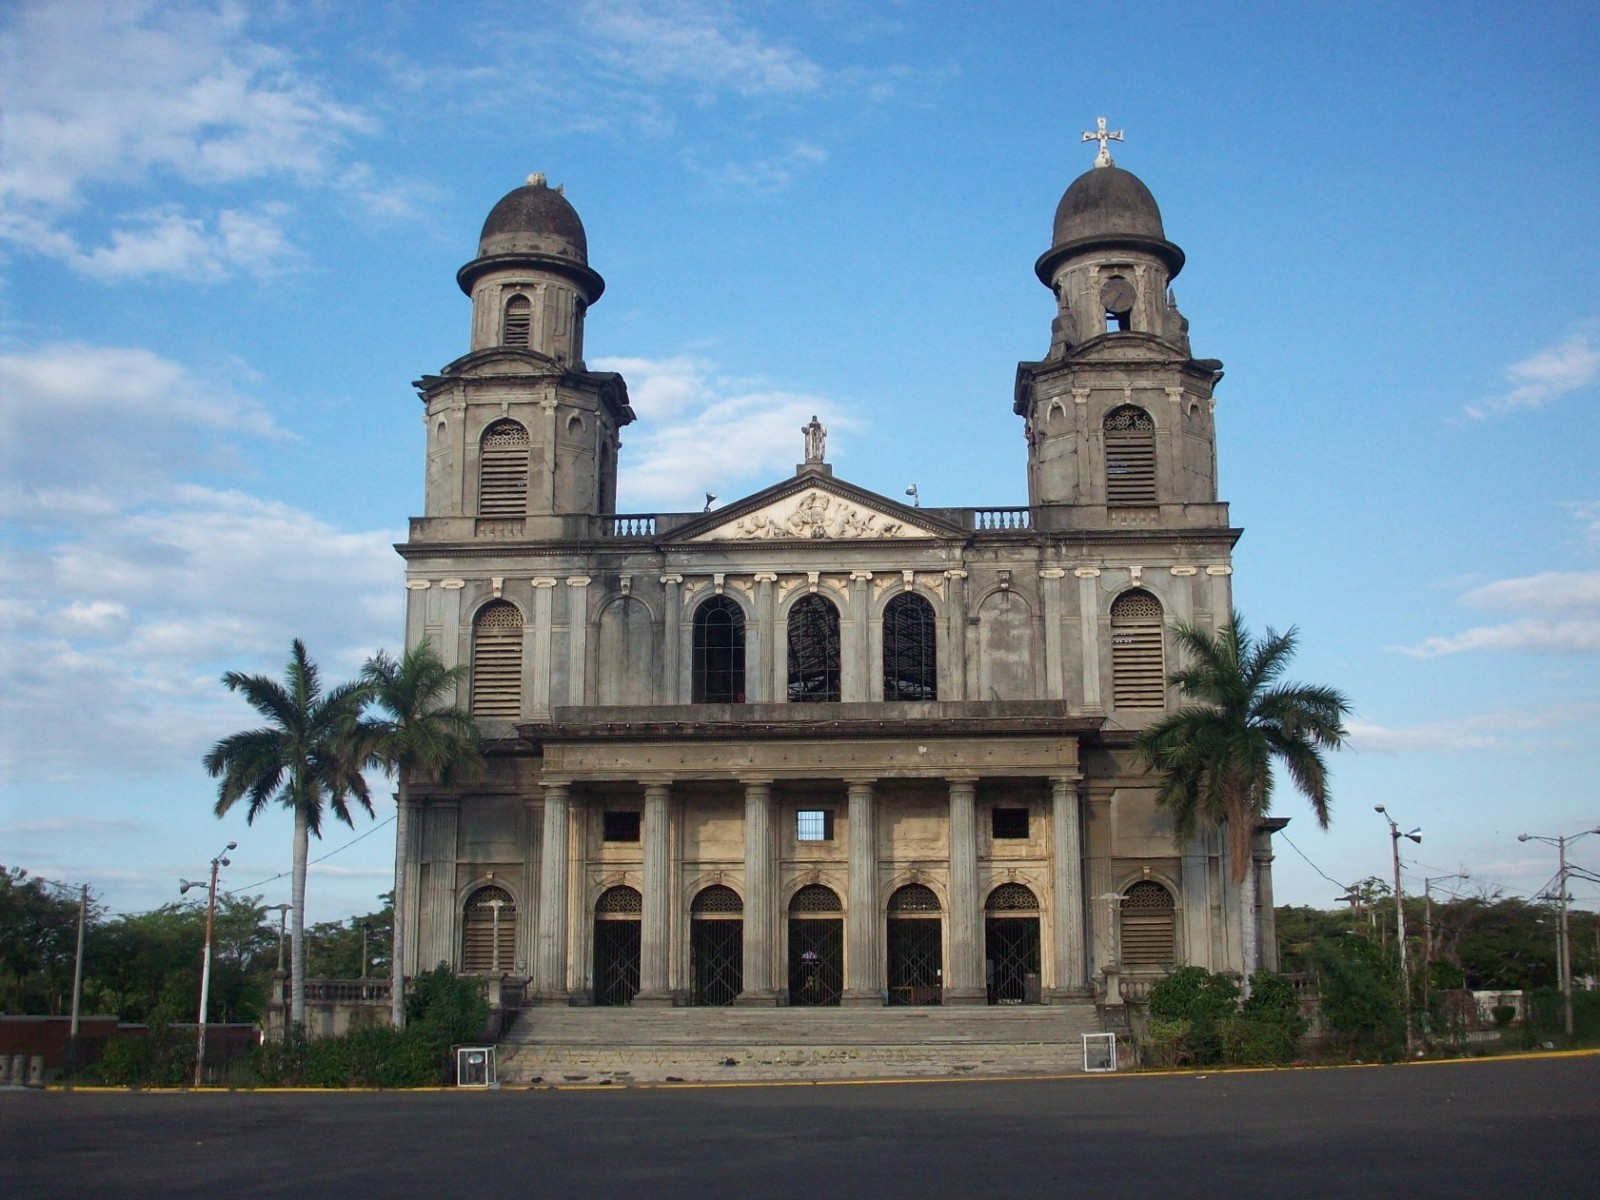 Cathedral of Managua. An old Roman Catholic cathedral built by the Dutch i